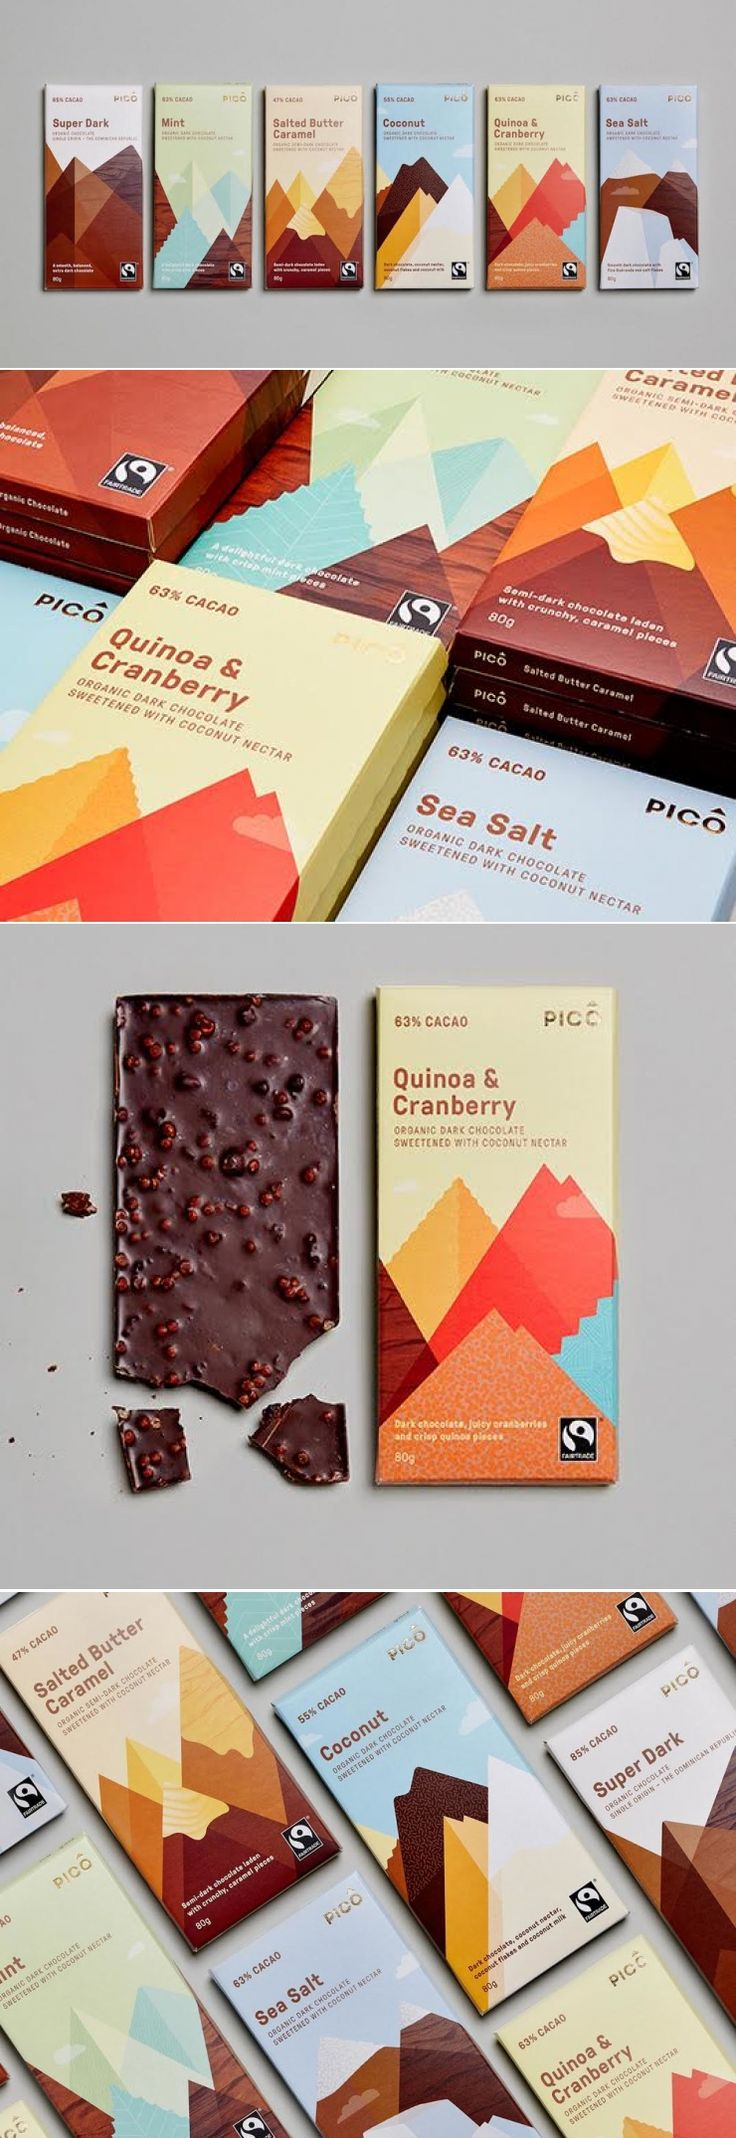 PICO Chocolate — The Dieline | Packaging & Branding Design & Innovation News